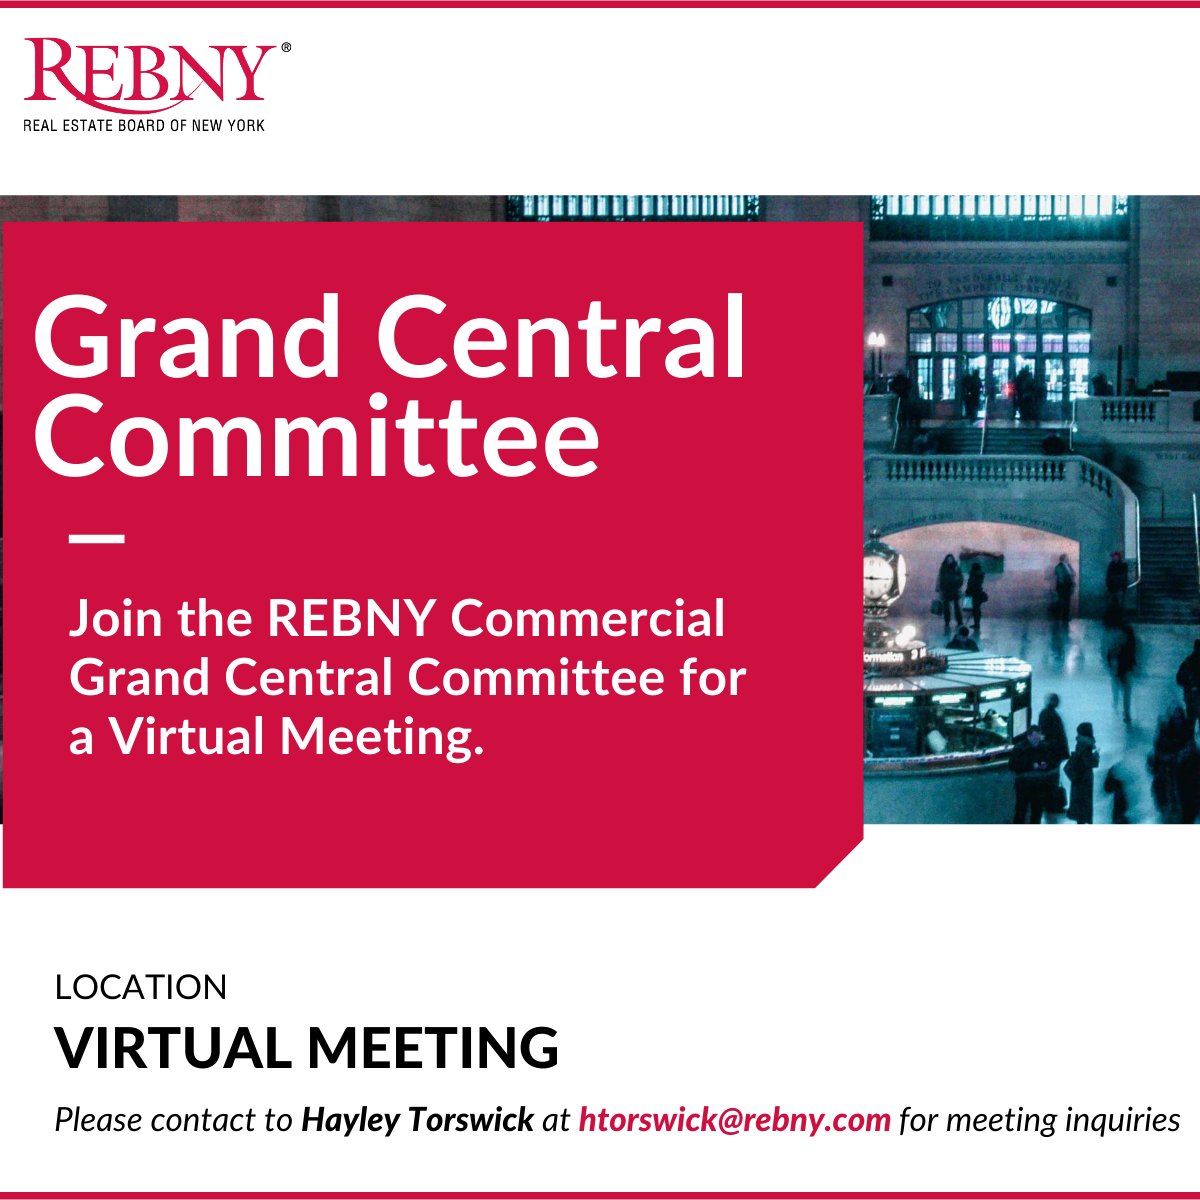 VIRTUAL: Commercial Brokerage Grand Central Committee Meeting.